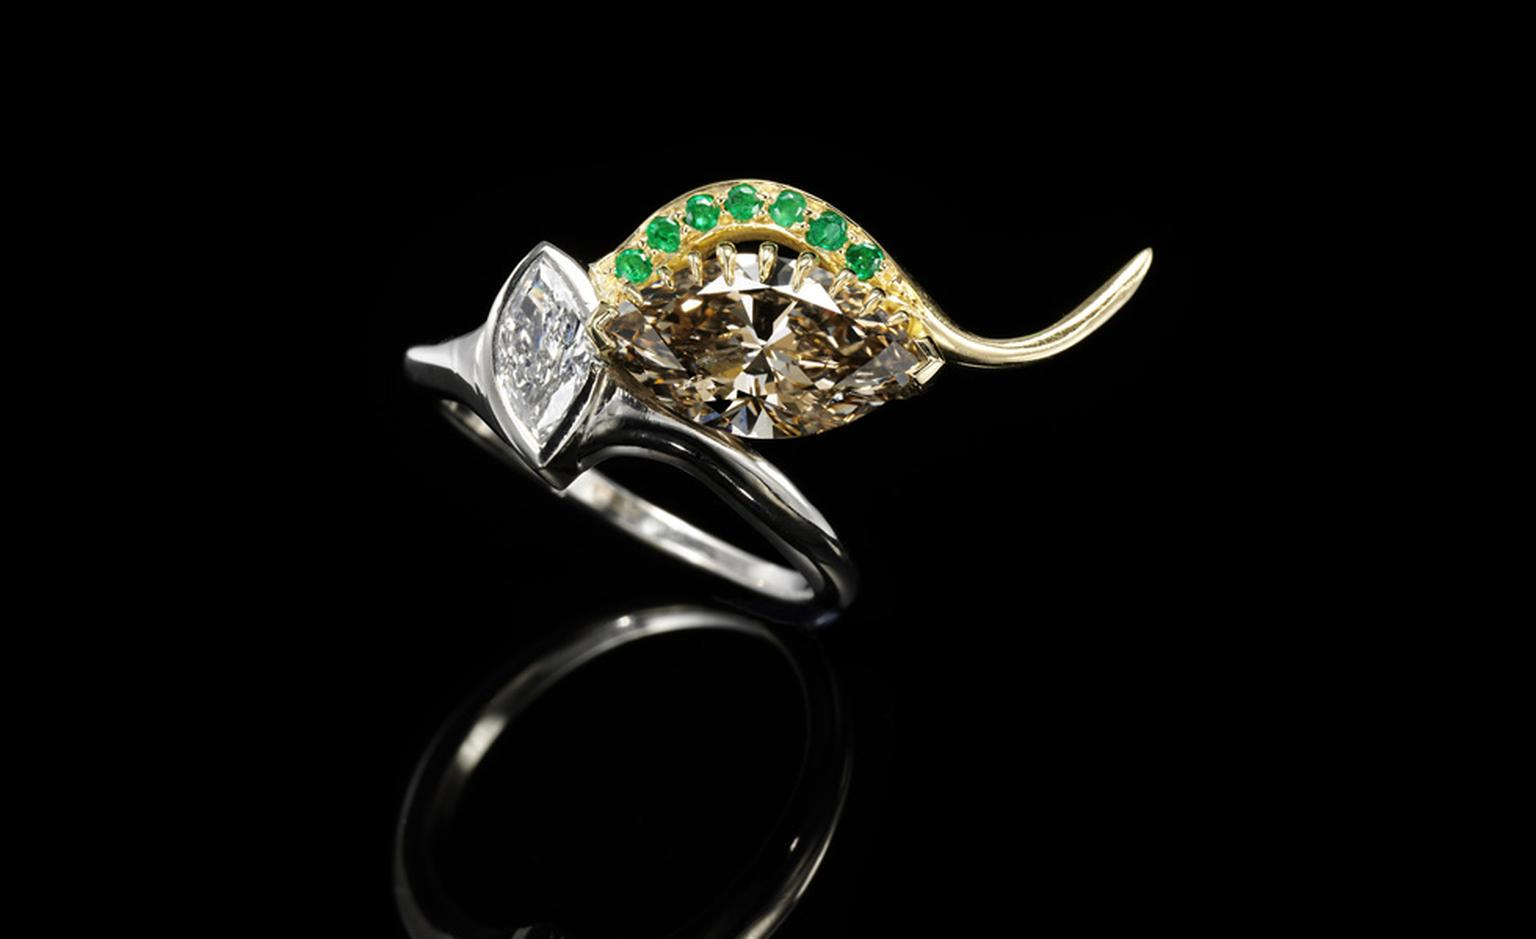 Jessica McCormack, 'Envy' diamond, 18k yellow and white gold ring, from the XIV collection, set with a marquise-shaped diamond weighing 2.28 carats. £23,500